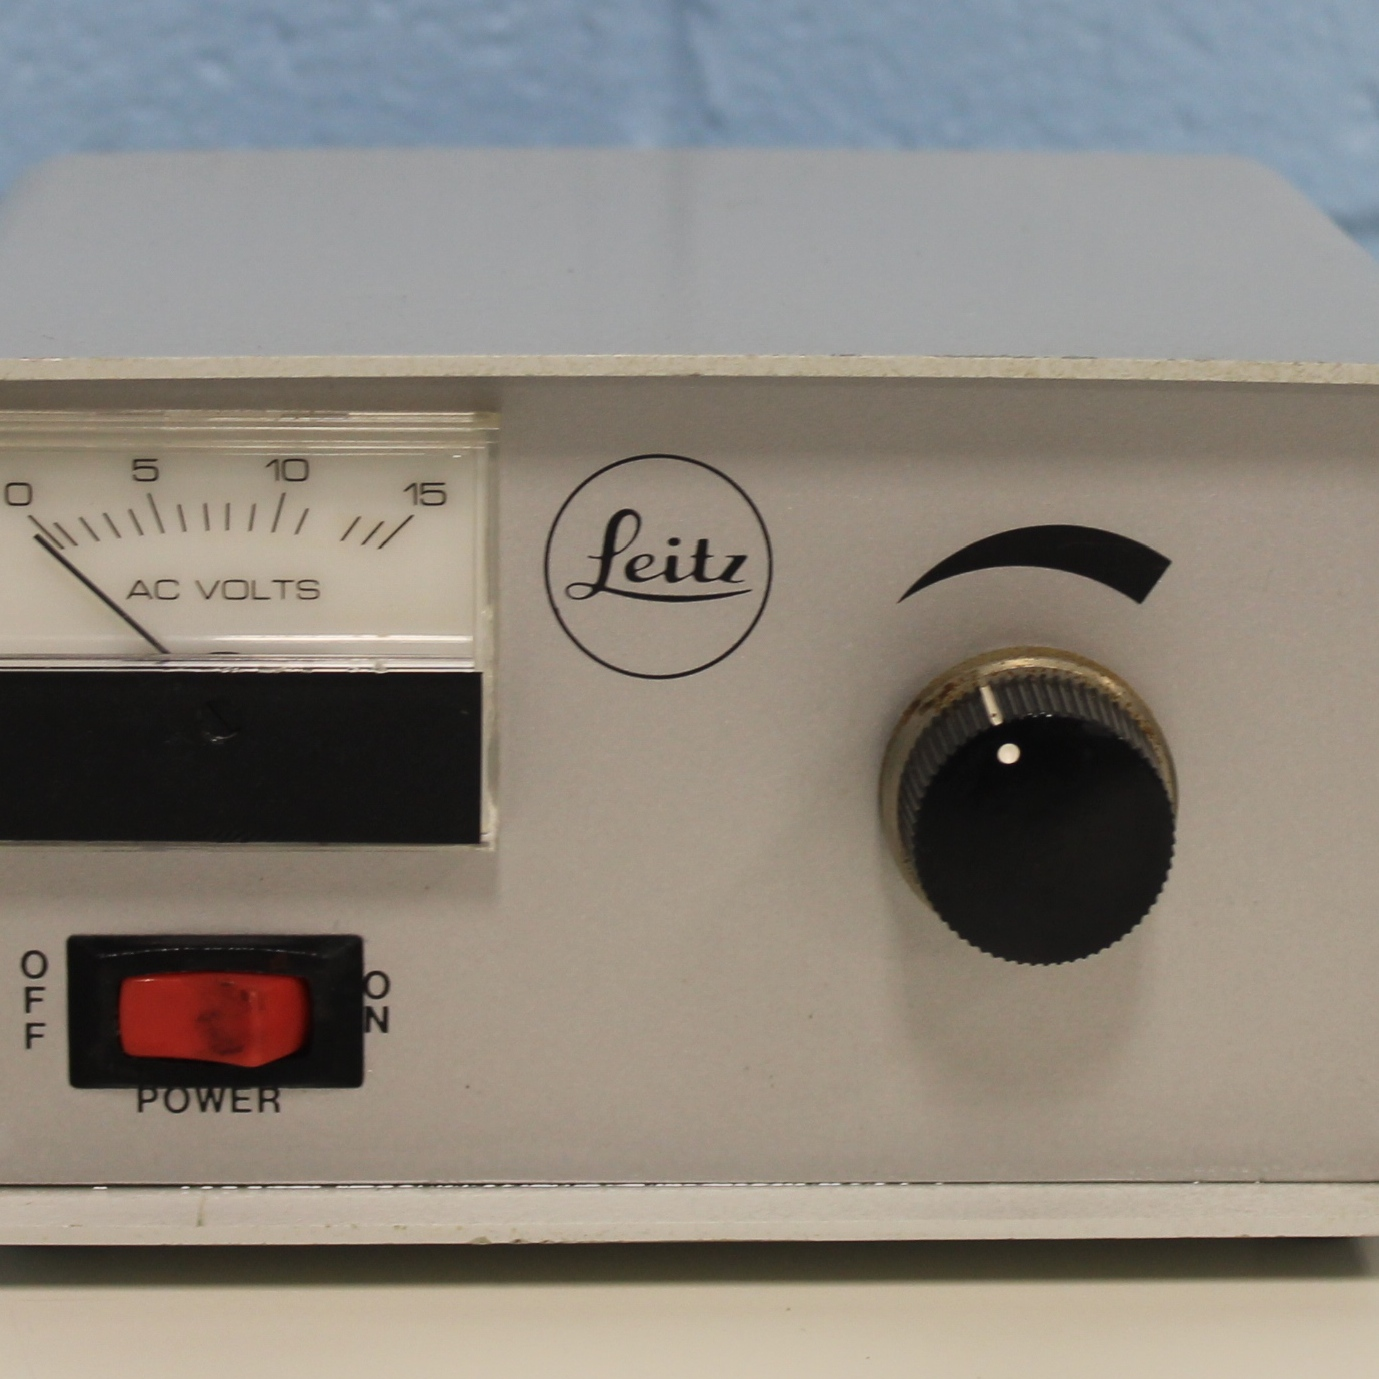 Leitz Microscope Power Supply CAT No. 050-262 Image